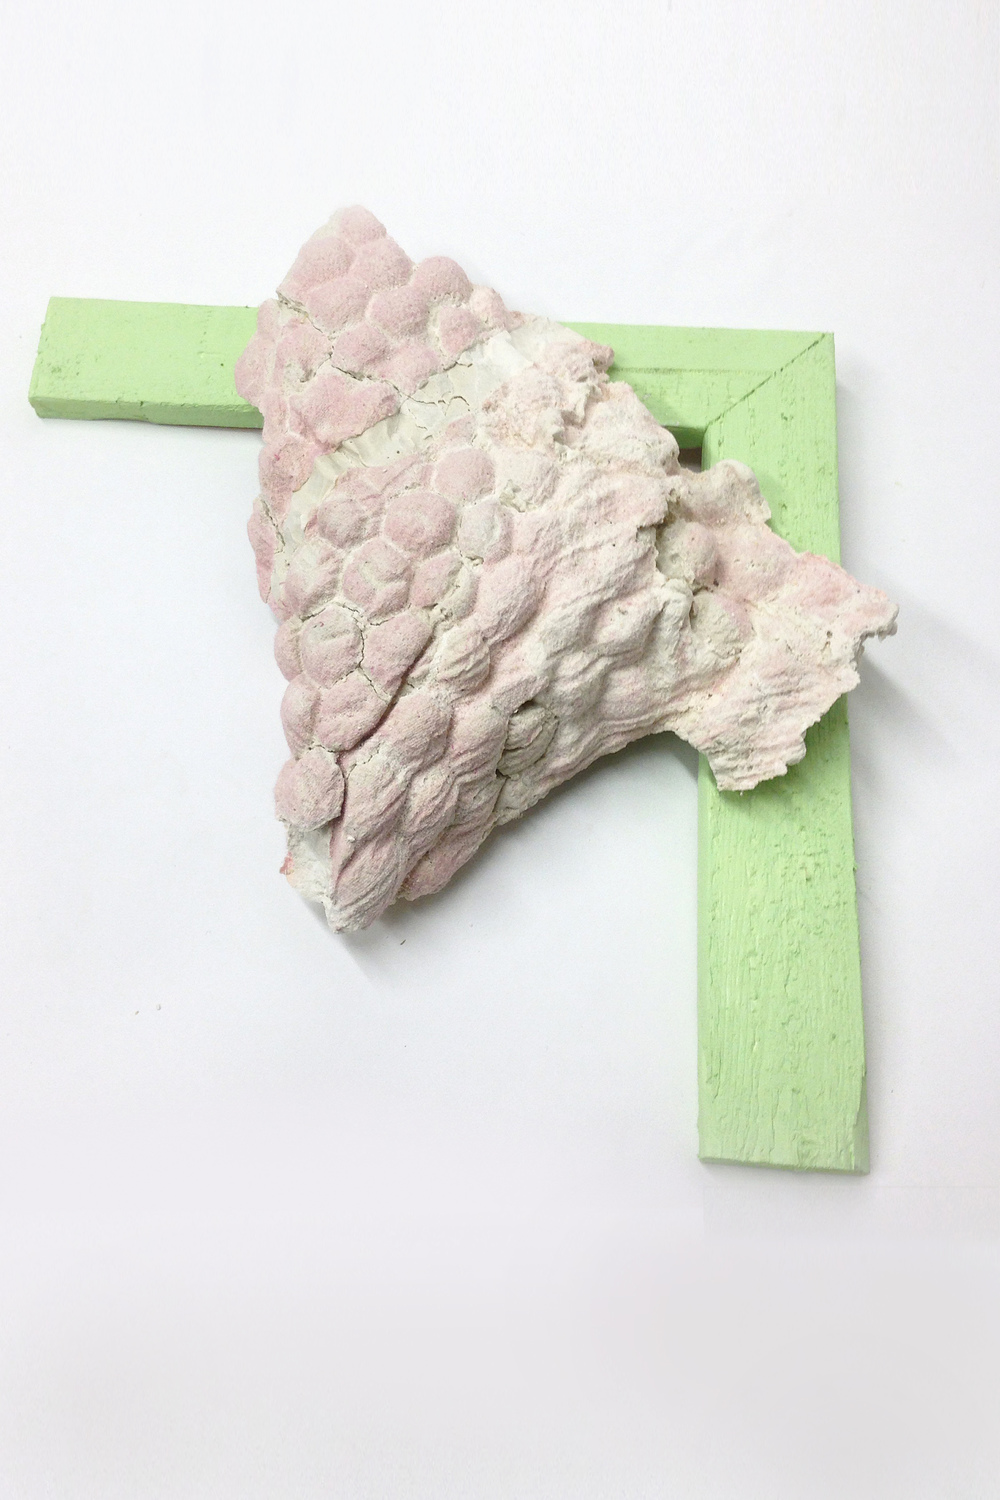 "SACCHAROMYCES CERVISIAE   fabric residue in plaster house paint, pine 15"" x 15"" x 4""  2014"